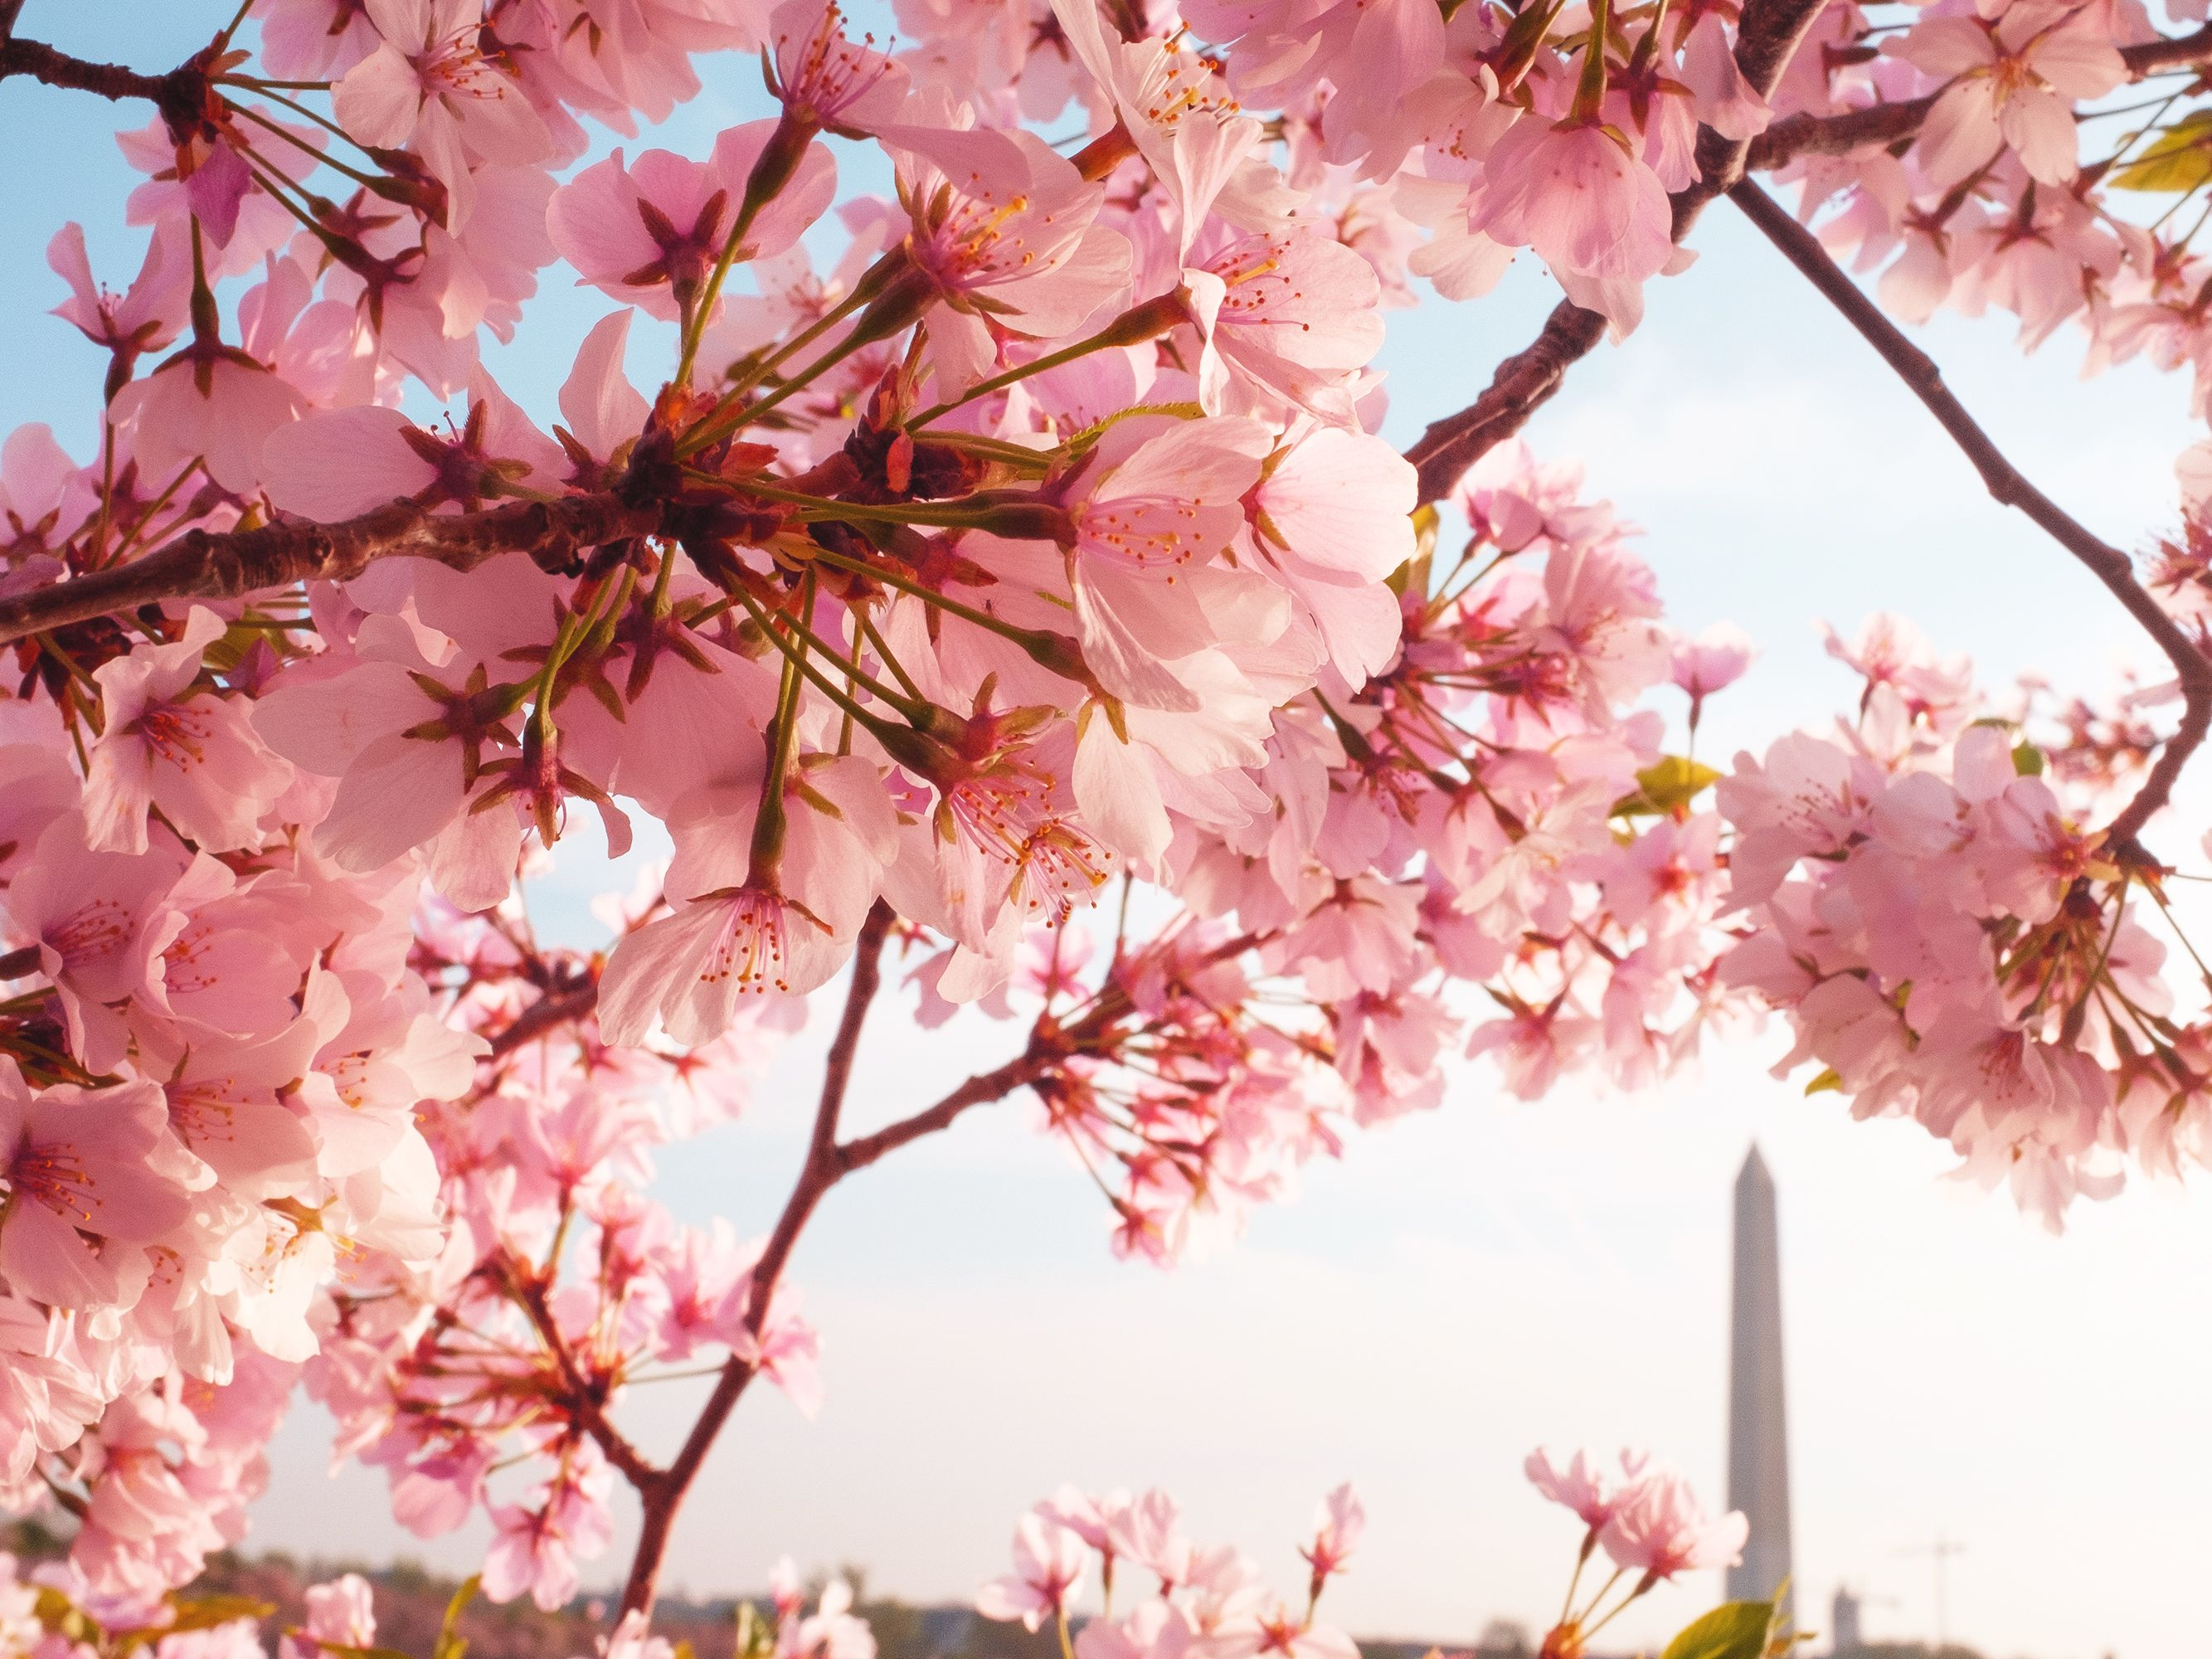 These Are The Four Best Cities To See Cherry Blossoms In 2019 Cherry Blossom Cherry Blossom Season Blossom